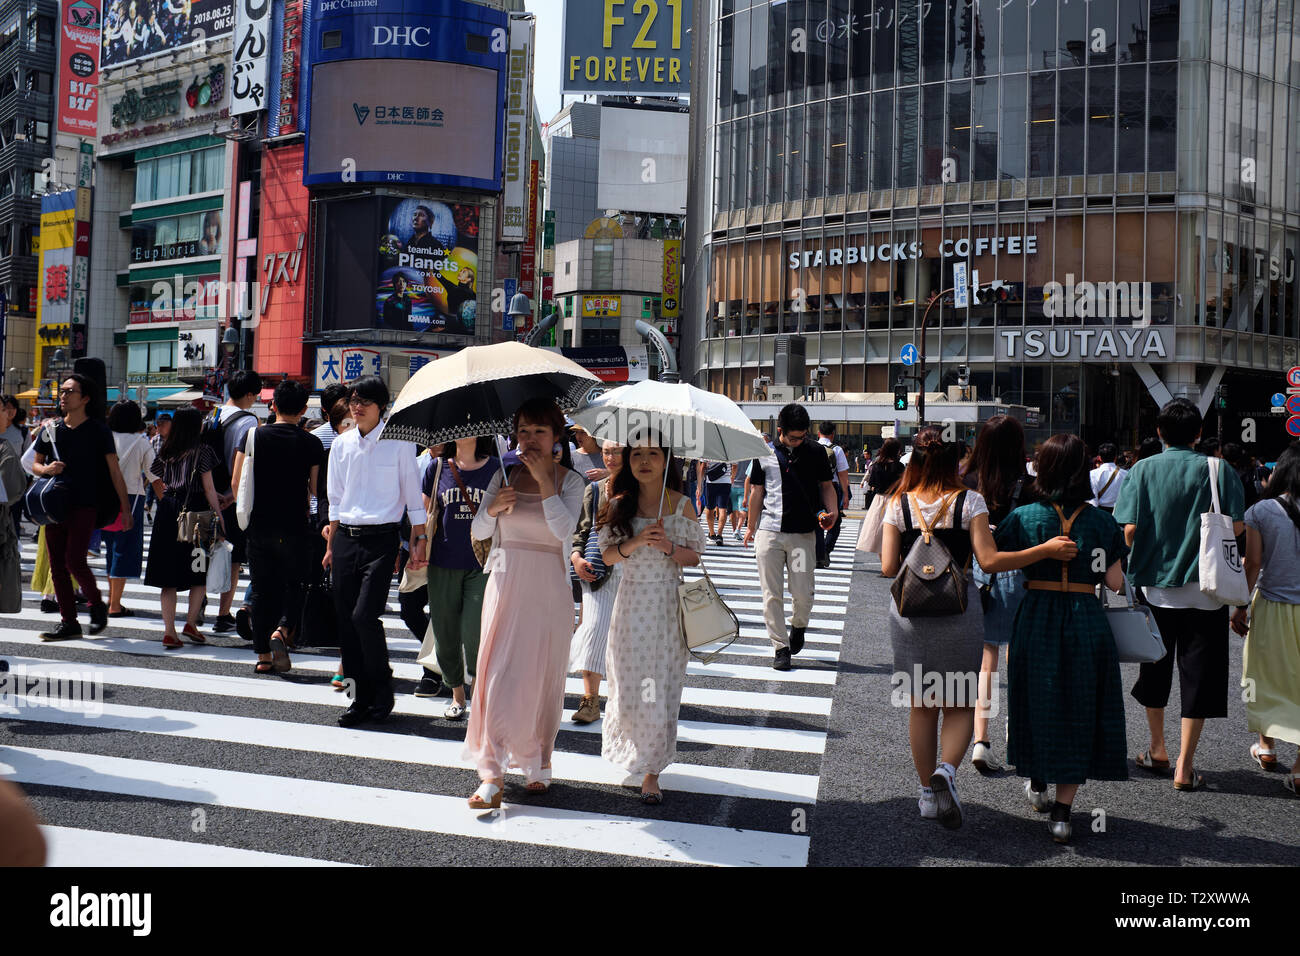 Pictures are pedestrians crossing Shibuya Crossing Tokyo Japan - Stock Image